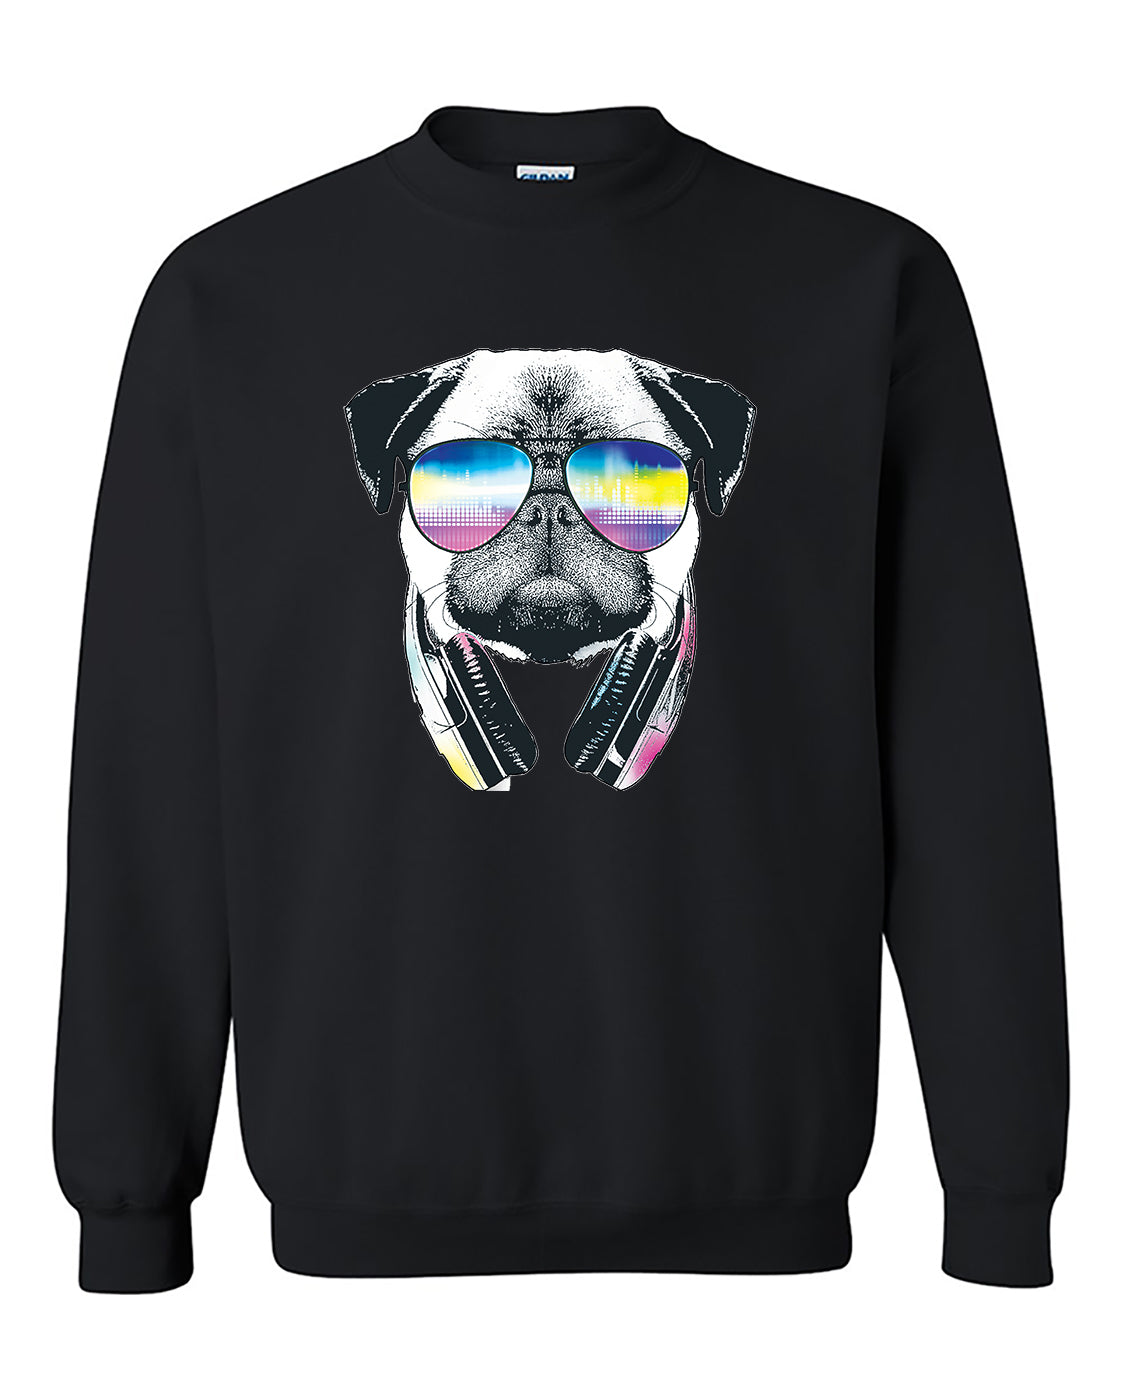 Cool Pug Music Revision headphones and Sunglasses Crewneck Sweater